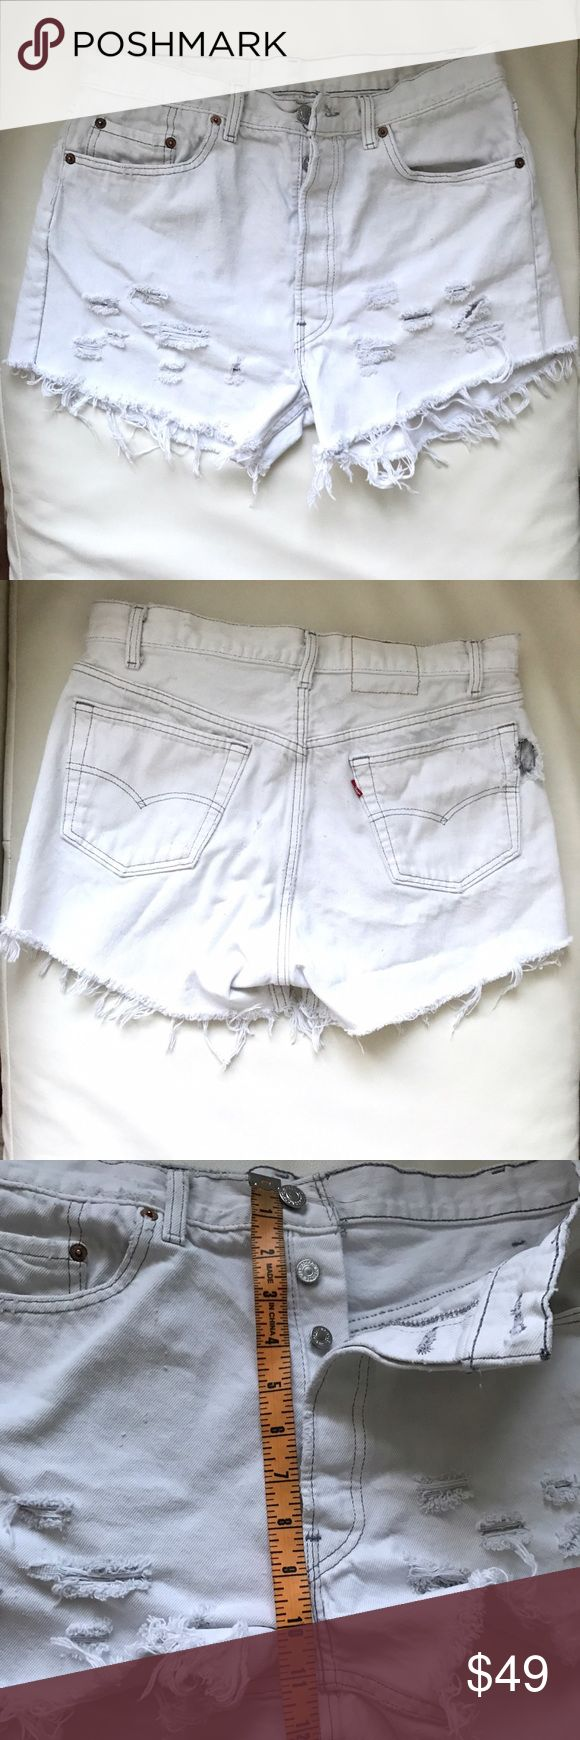 LEVI's vintage white denim cut-off jeans shorts 34 Pre-loved. Soft and wearable. Distressed. Has a small hole on left back pocket and big hole in right back pocket (see pictures). Nothing a budding seamstress can't fix. Levi's Shorts Jean Shorts